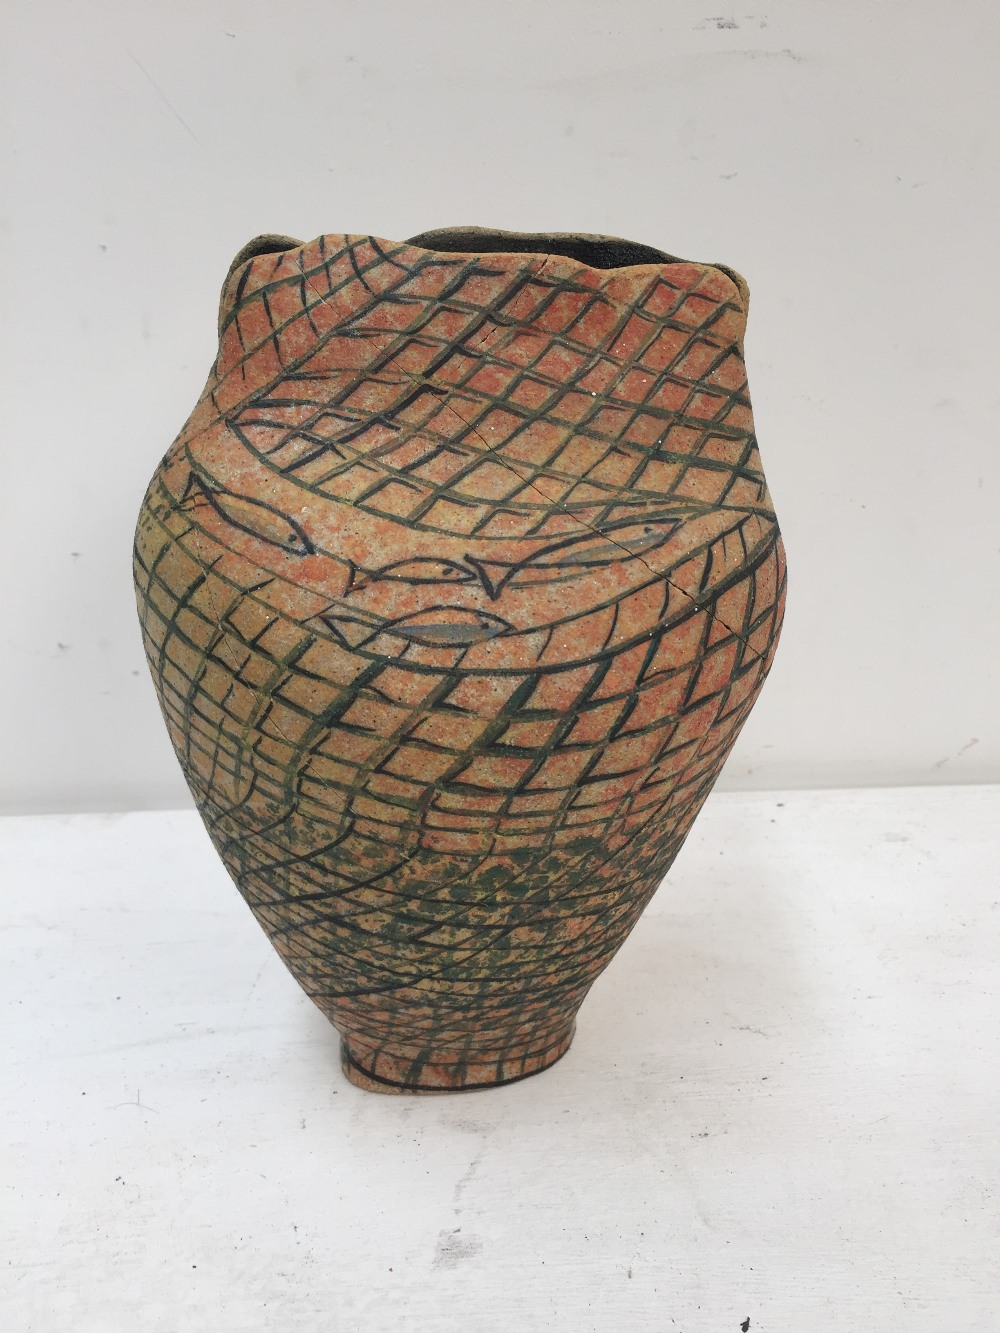 Lot 48 - LOCAL INTEREST: A Linda Browne pottery vase decorated with fishing motifs, 20cmH,